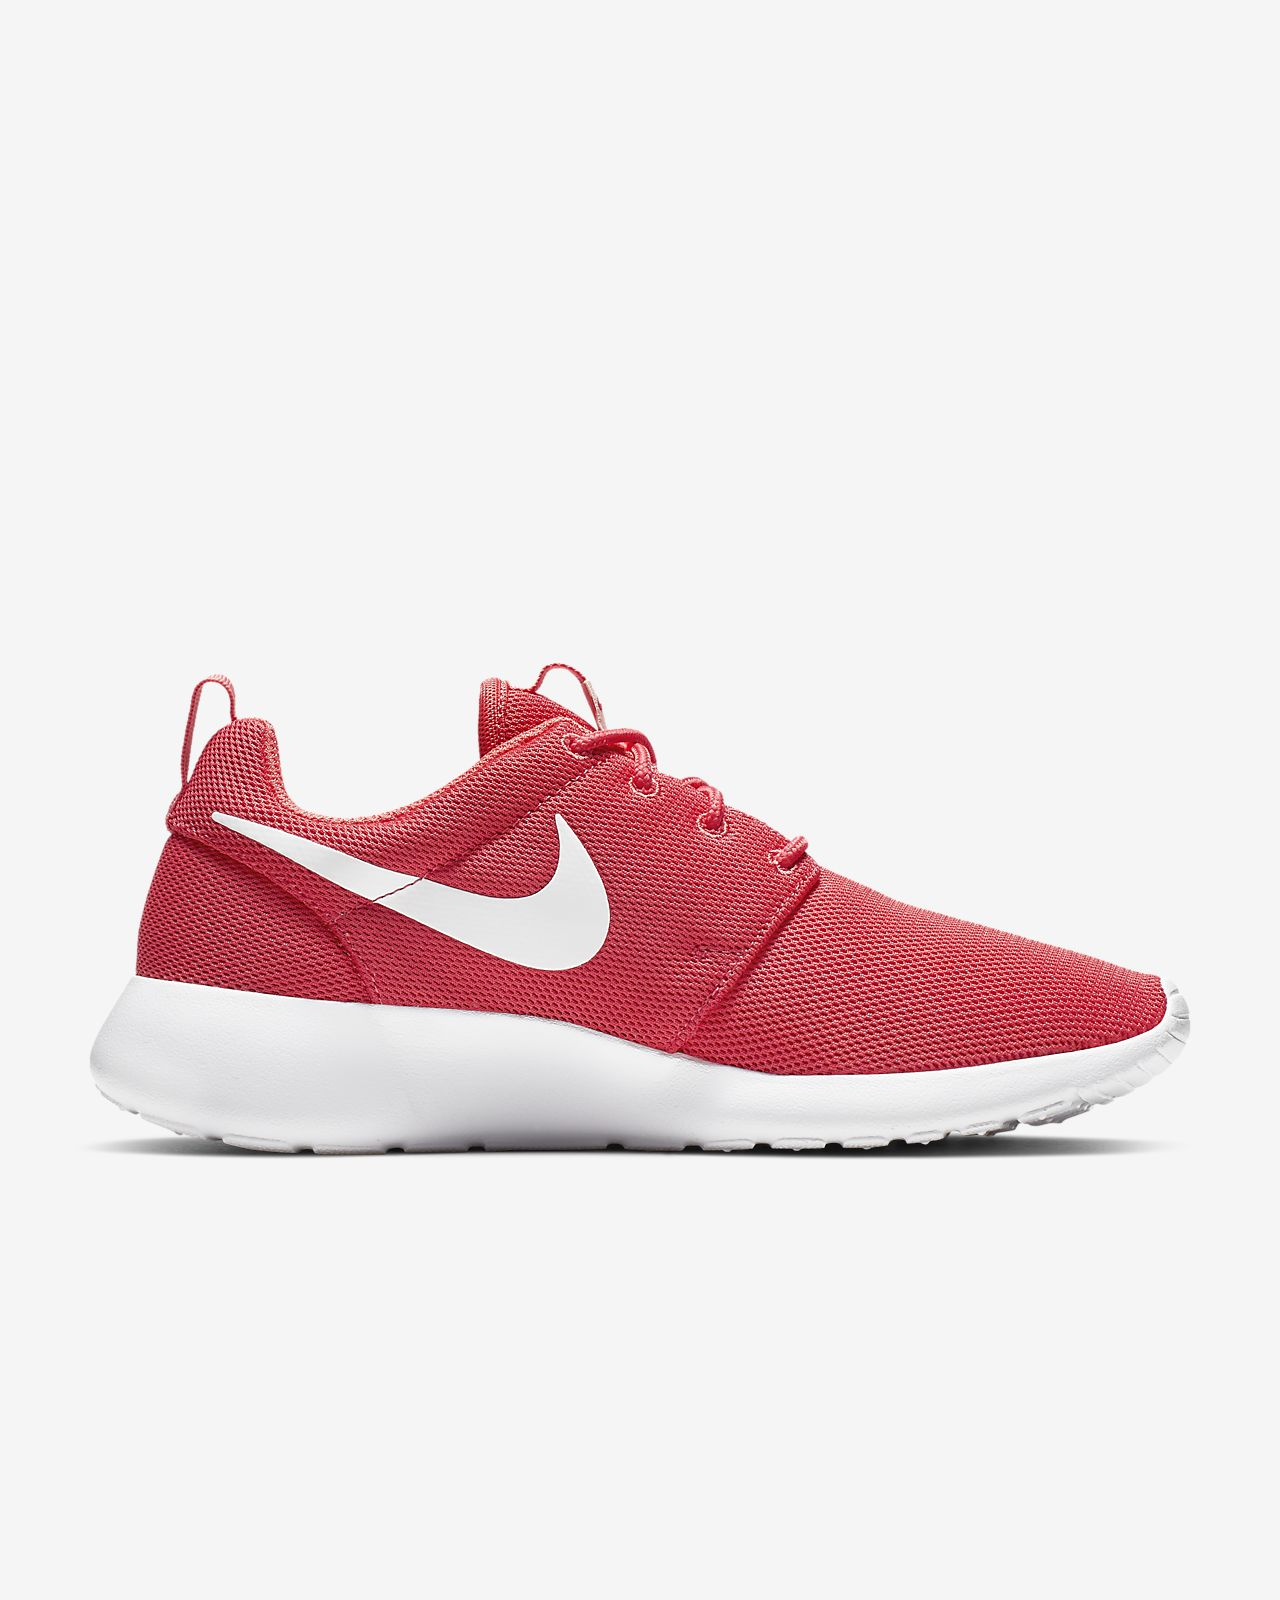 premium selection afdfd c2a96 ... Nike Roshe One Women s Shoe